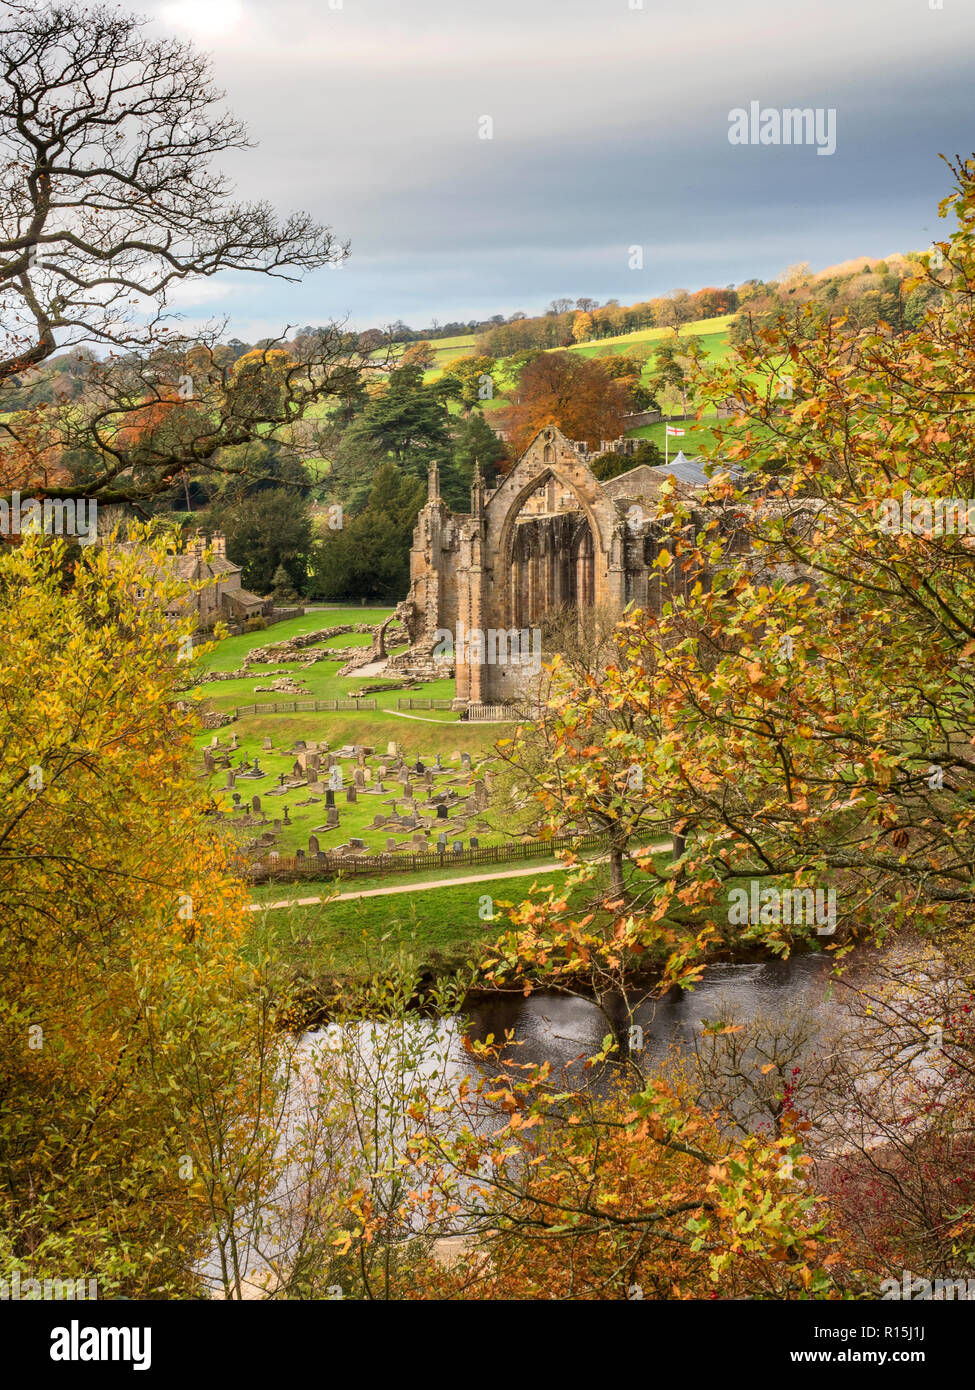 The ruins of Bolton Priory from a viewpoint across the River Wharfe in autumn at Bolton Abbey Yorkshire Dales England - Stock Image